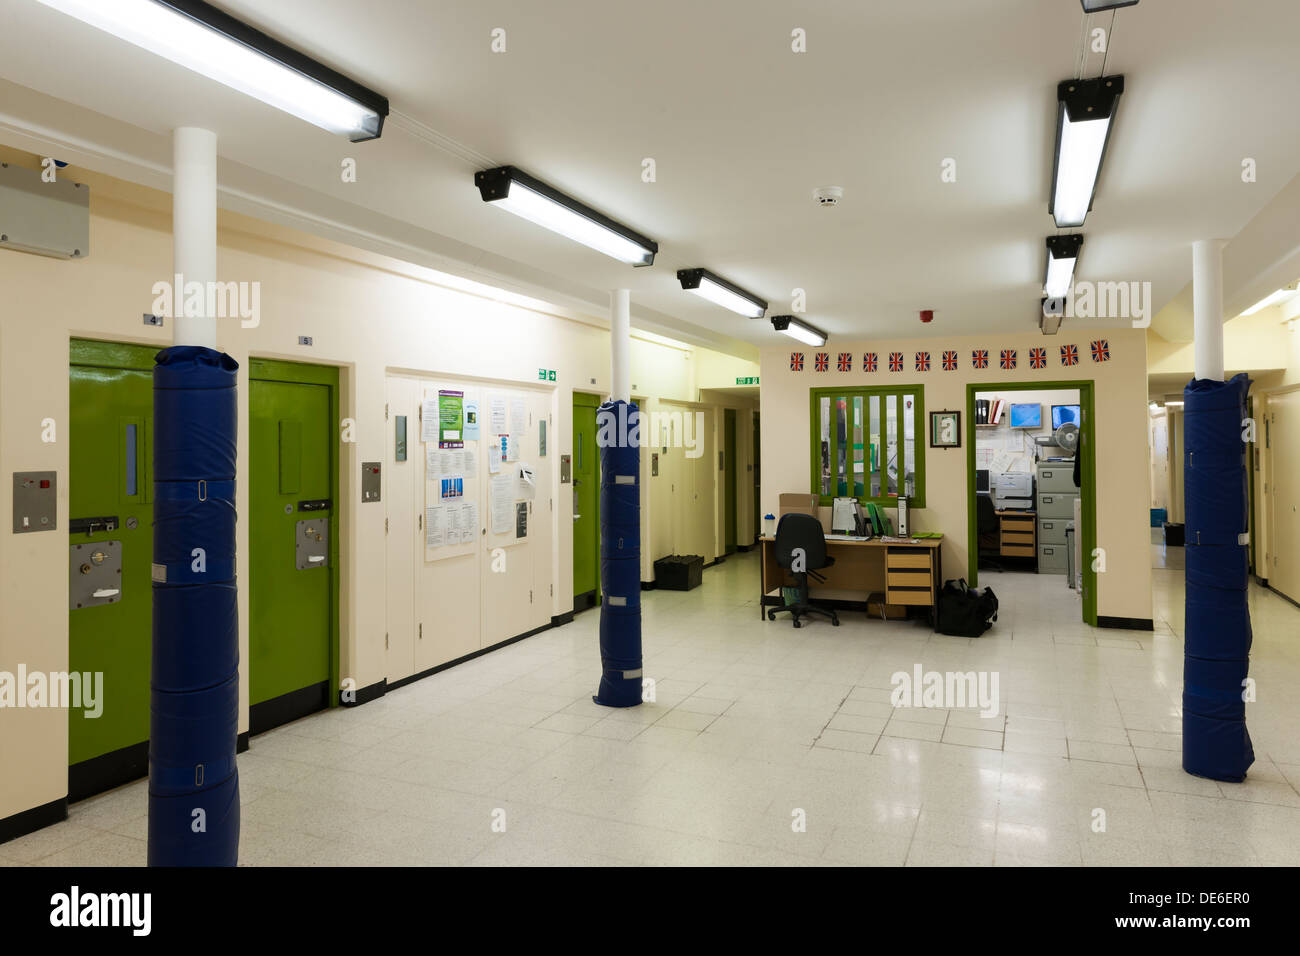 The Solitary Confinement wing of one of Her Majesty's Prisons in Lancashire, UK. - Stock Image